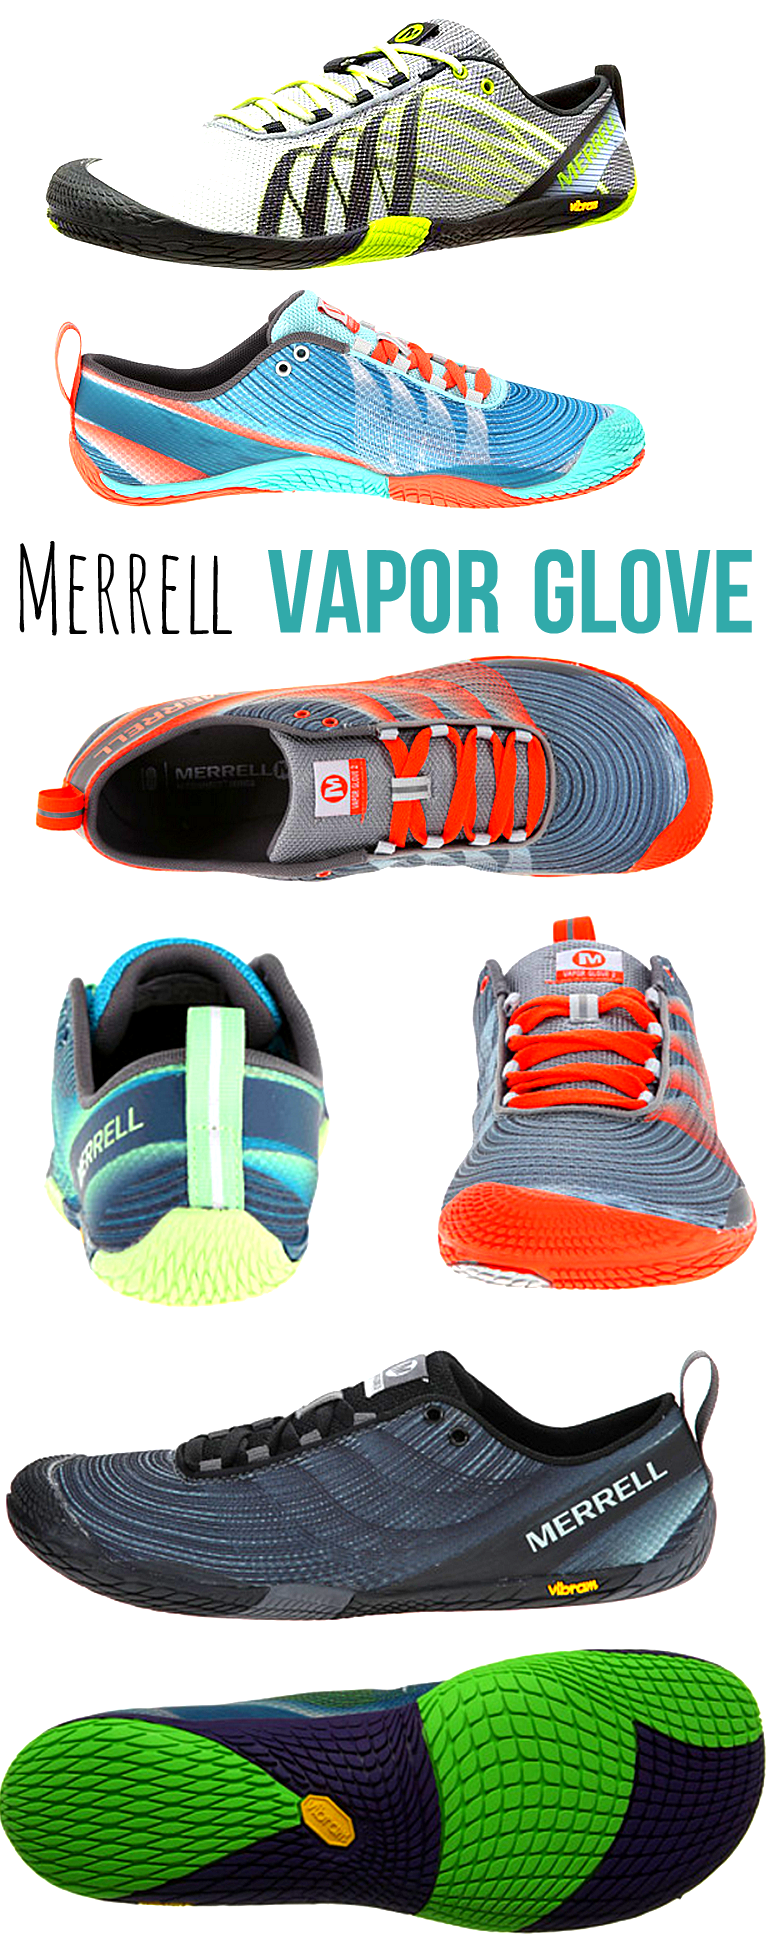 Merrell Vapor Glove Review for Forefoot Running